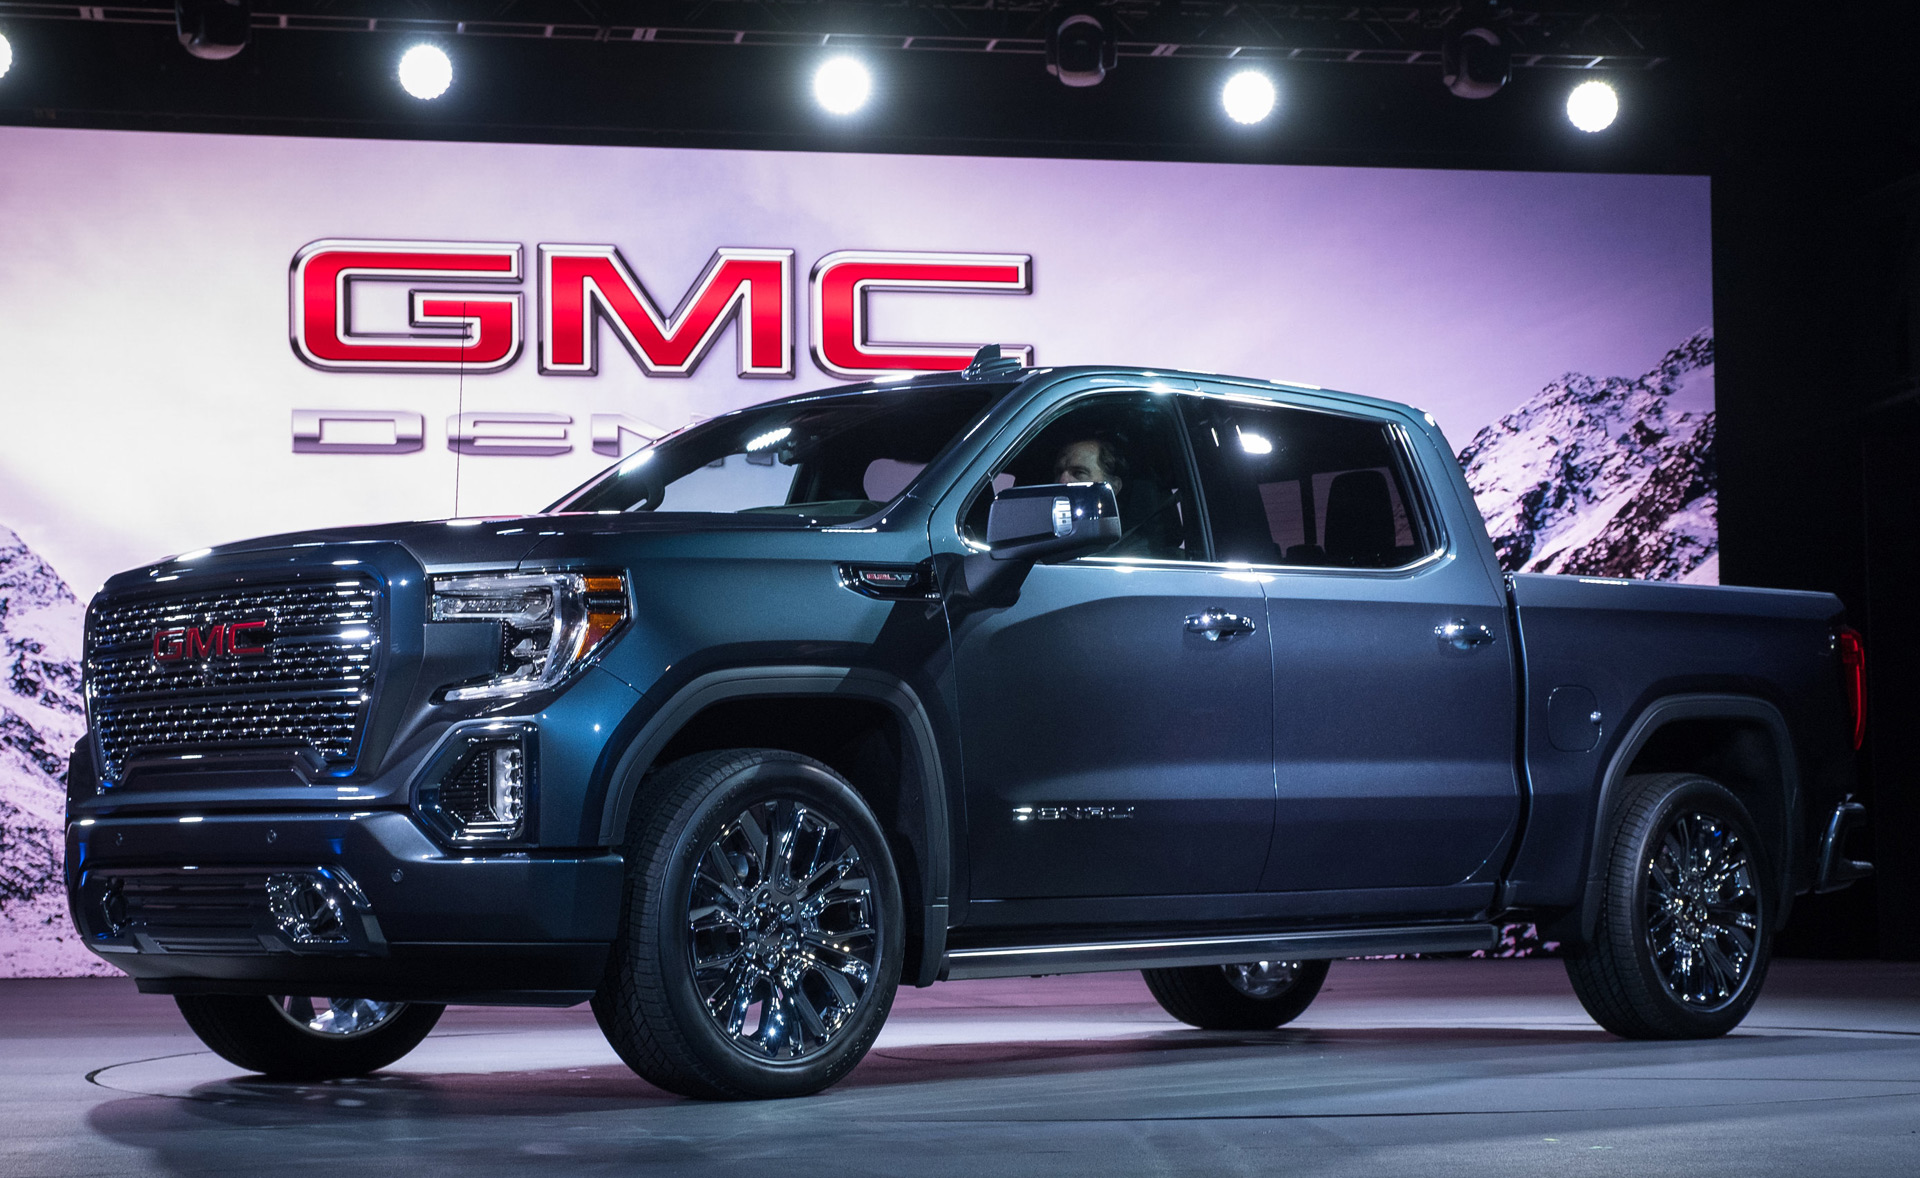 2019 Gmc Sierra First Look New Truck Pushes Past Silverado With